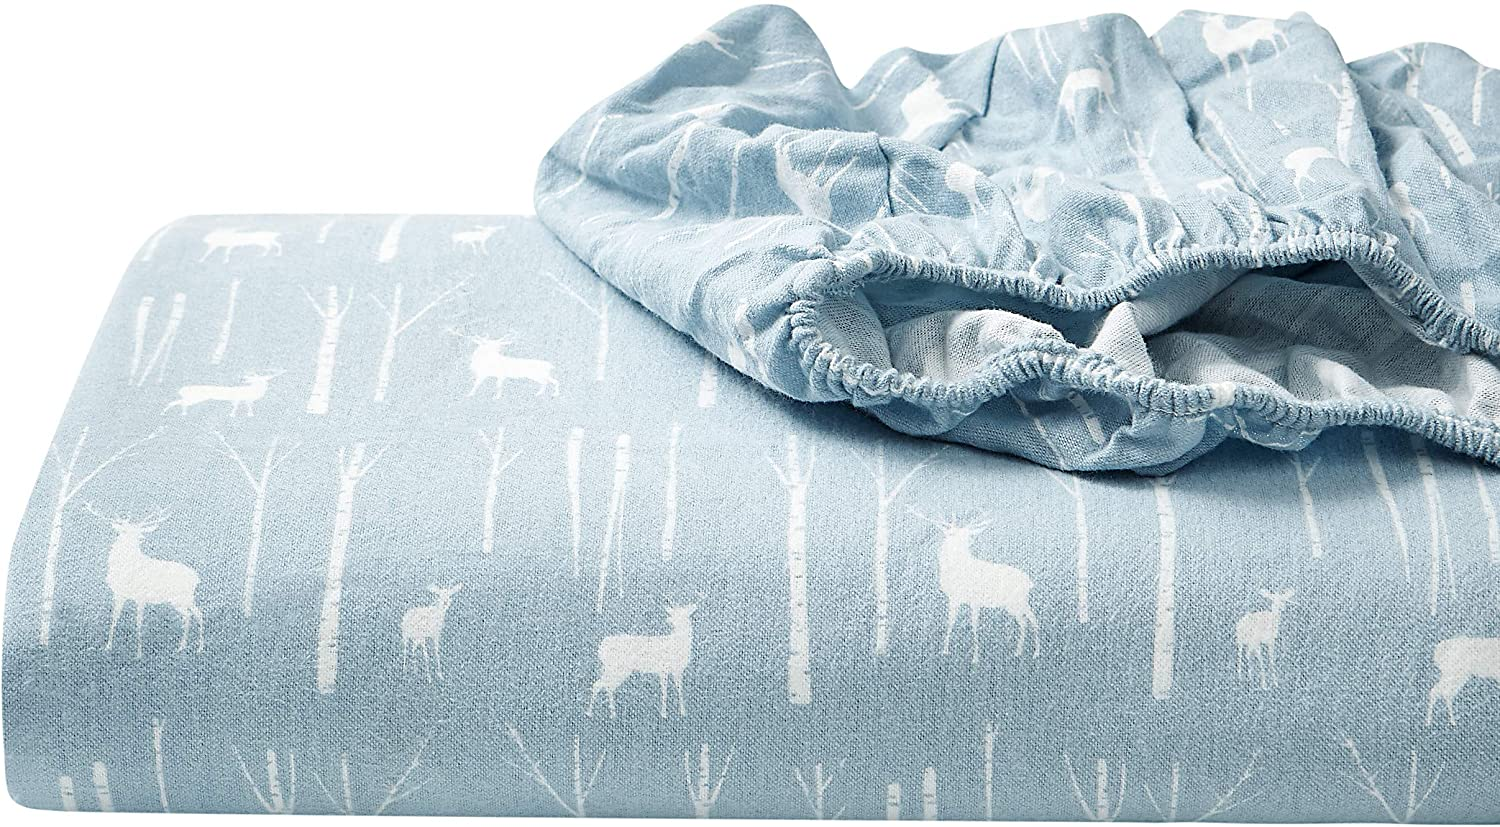 Eddie Bauer - Flannel Collection - 100% Premium Cotton Bedding Sheet Set, Pre-Shrunk & Brushed For Extra Softness, Comfort, and Cozy Feel, Twin, Birch Forest